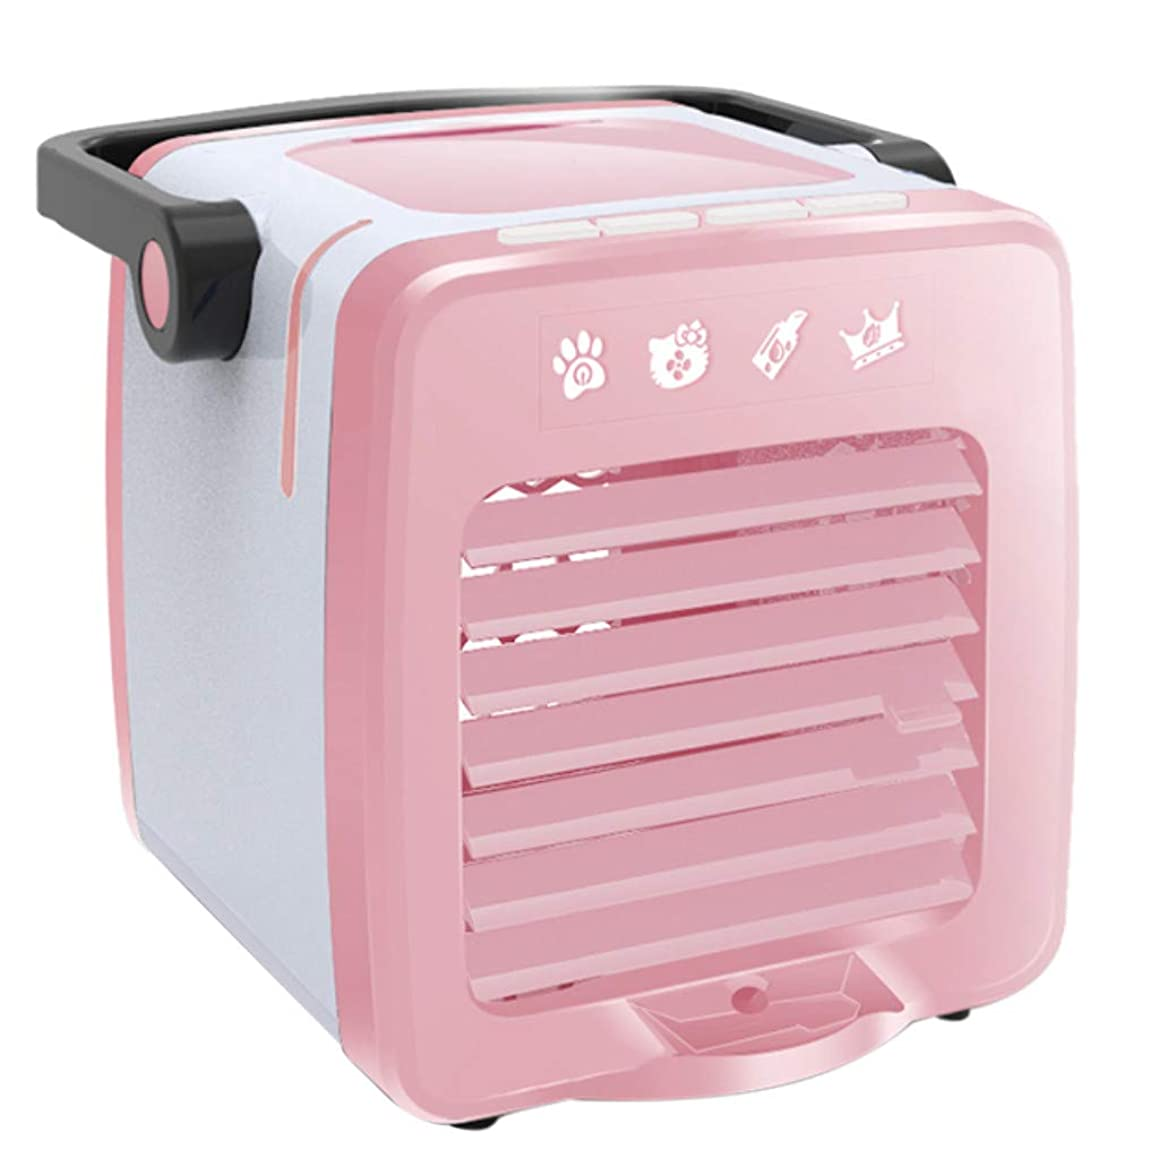 Tpingfe USB Charging Portable Multifunction Air Conditioning Fan Home Refrigerator Coole (Pink)